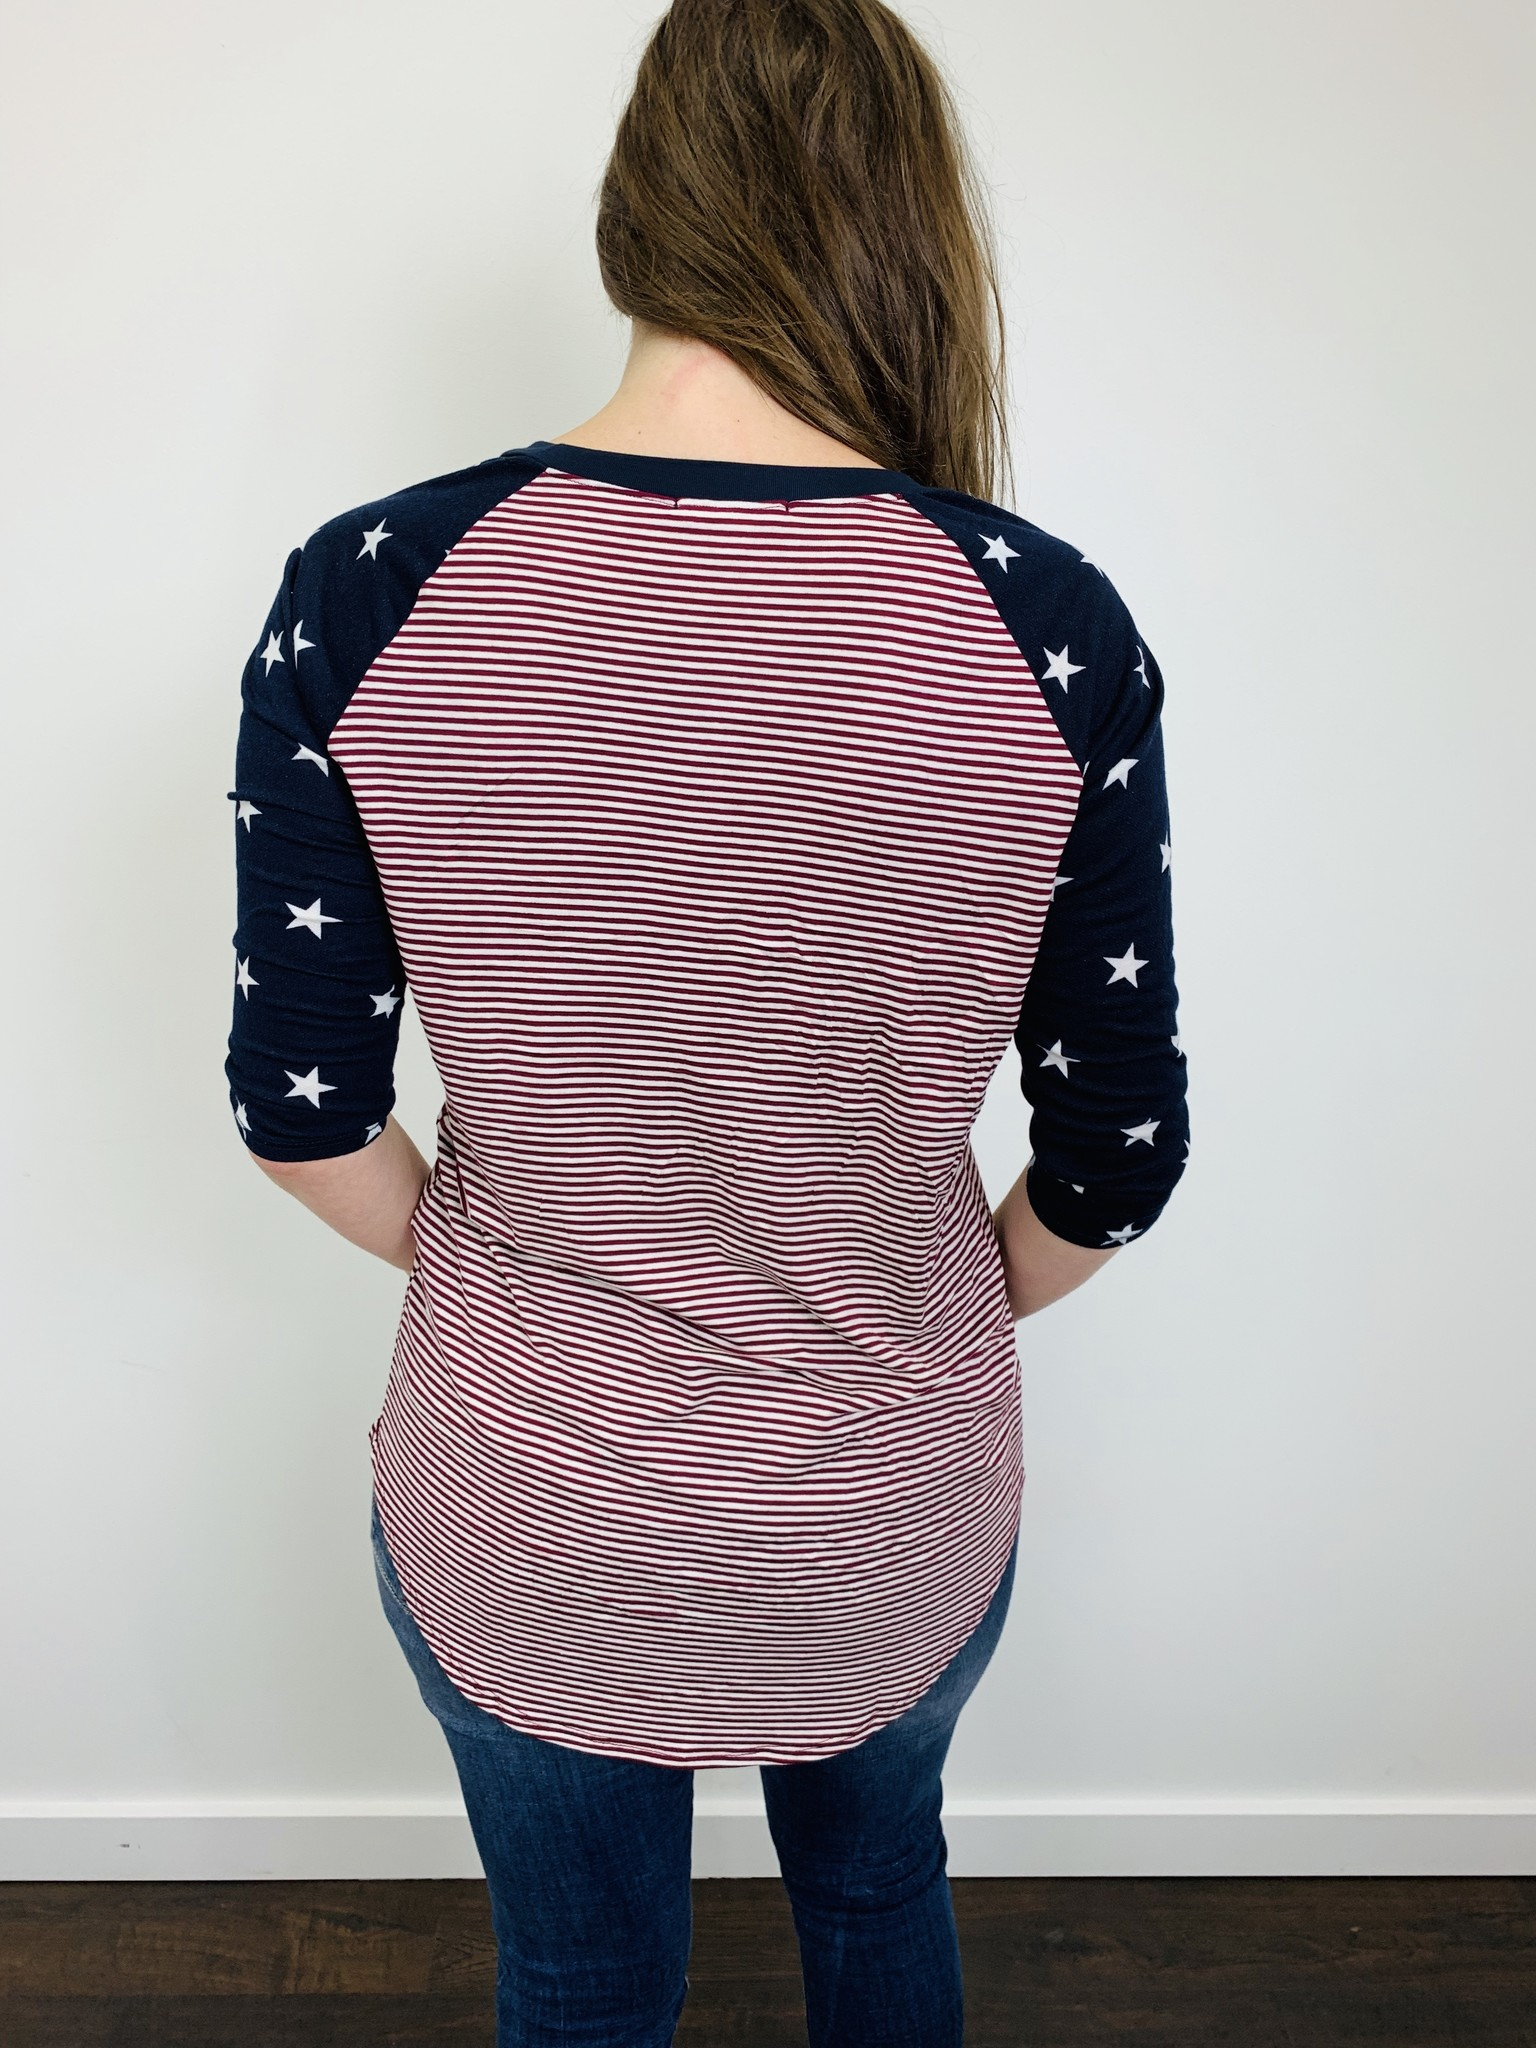 Downeast Ball Game Tee in Forever Stars